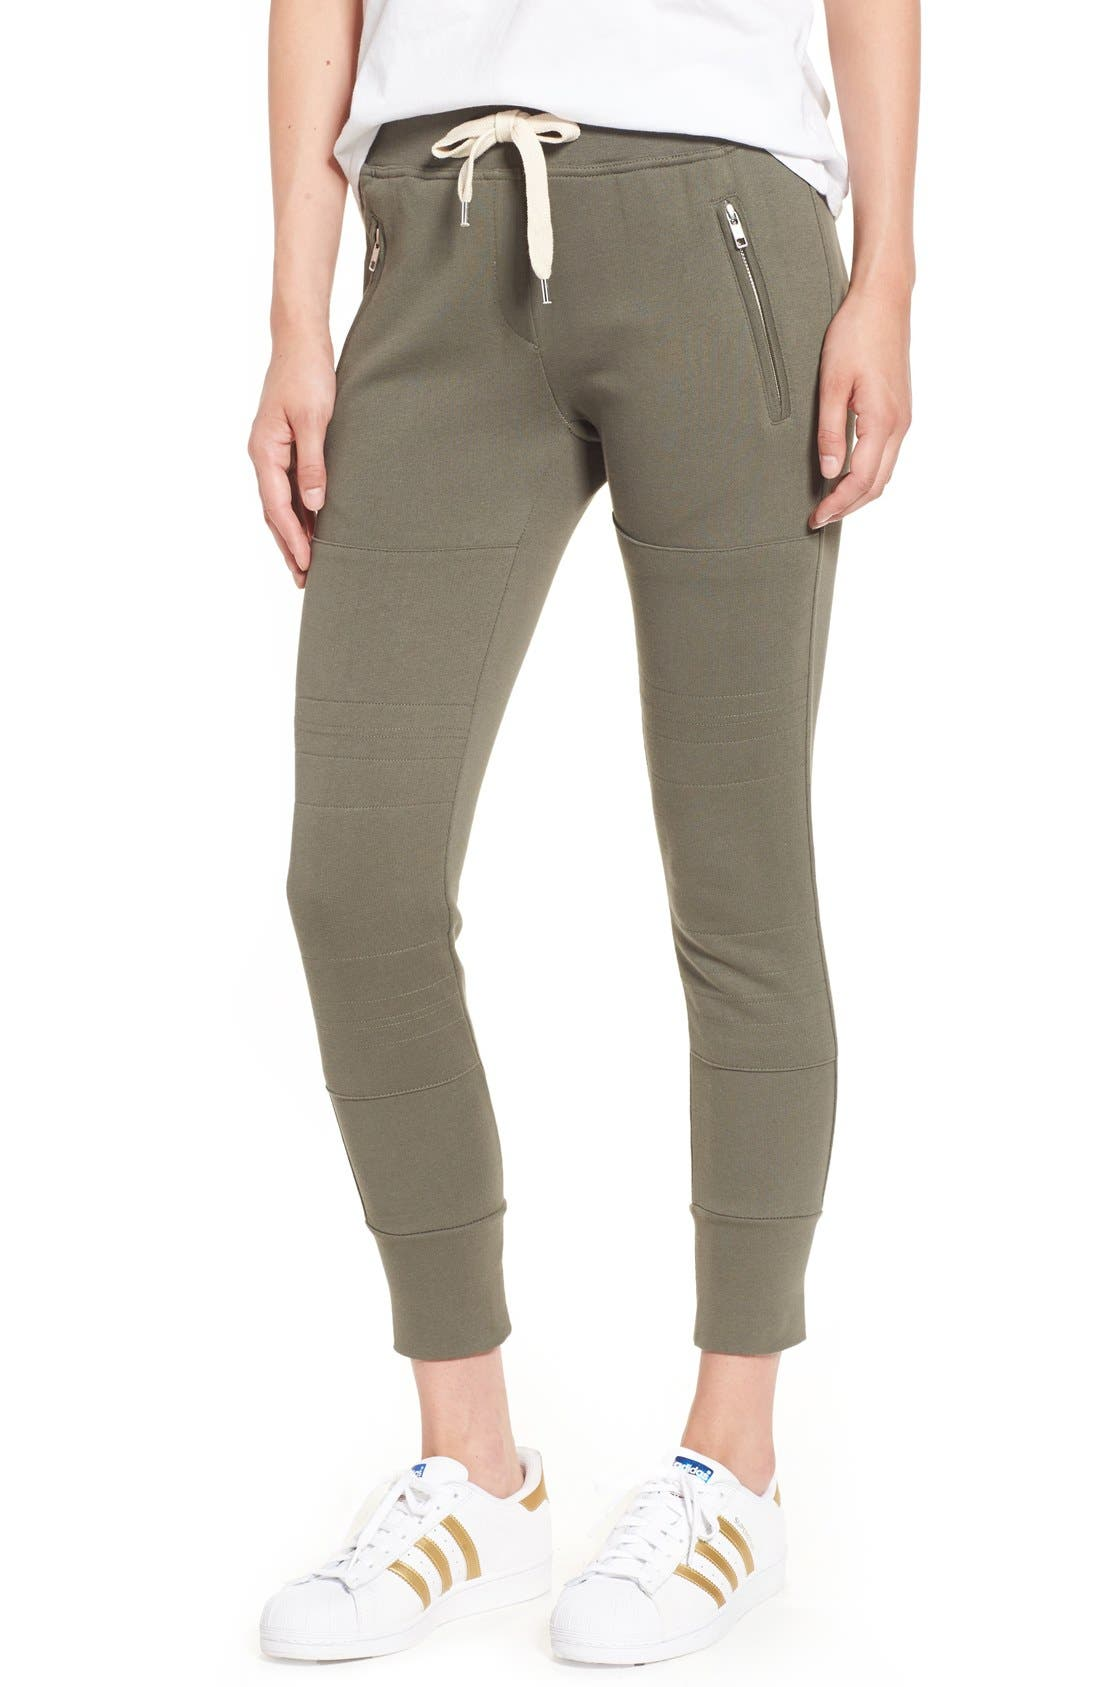 'Lux' Skinny Cotton Jogger Pants,                         Main,                         color, Olive